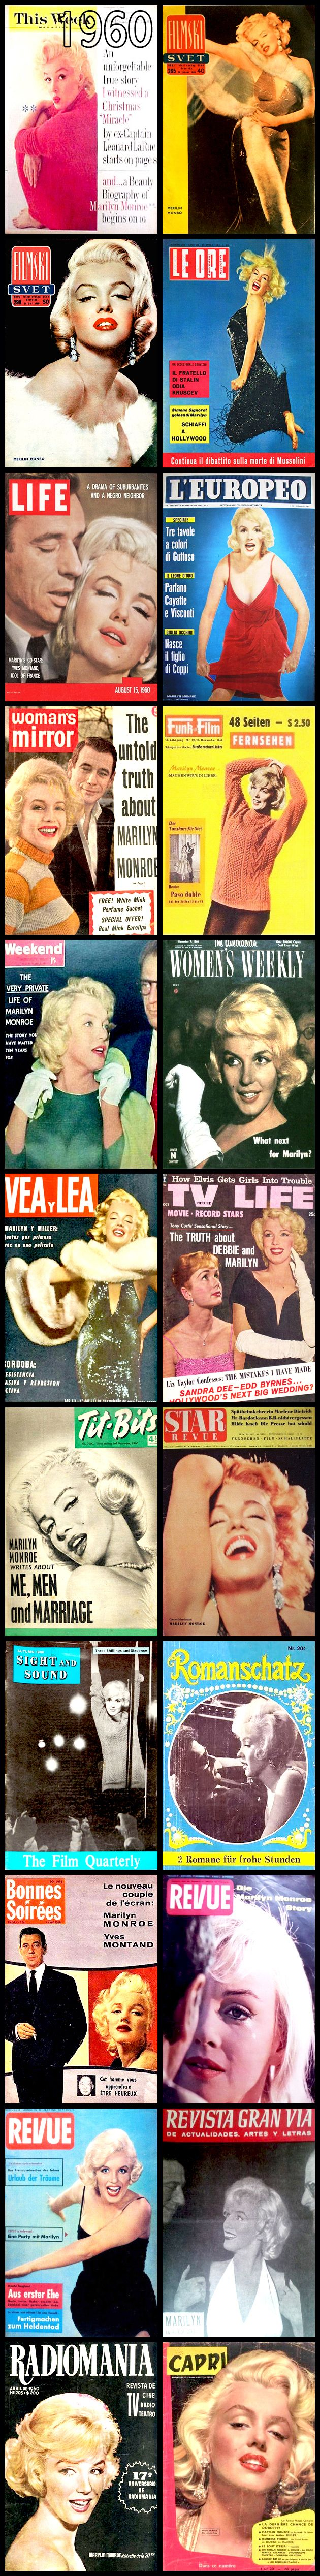 1960 magazine covers of Marilyn Monroe